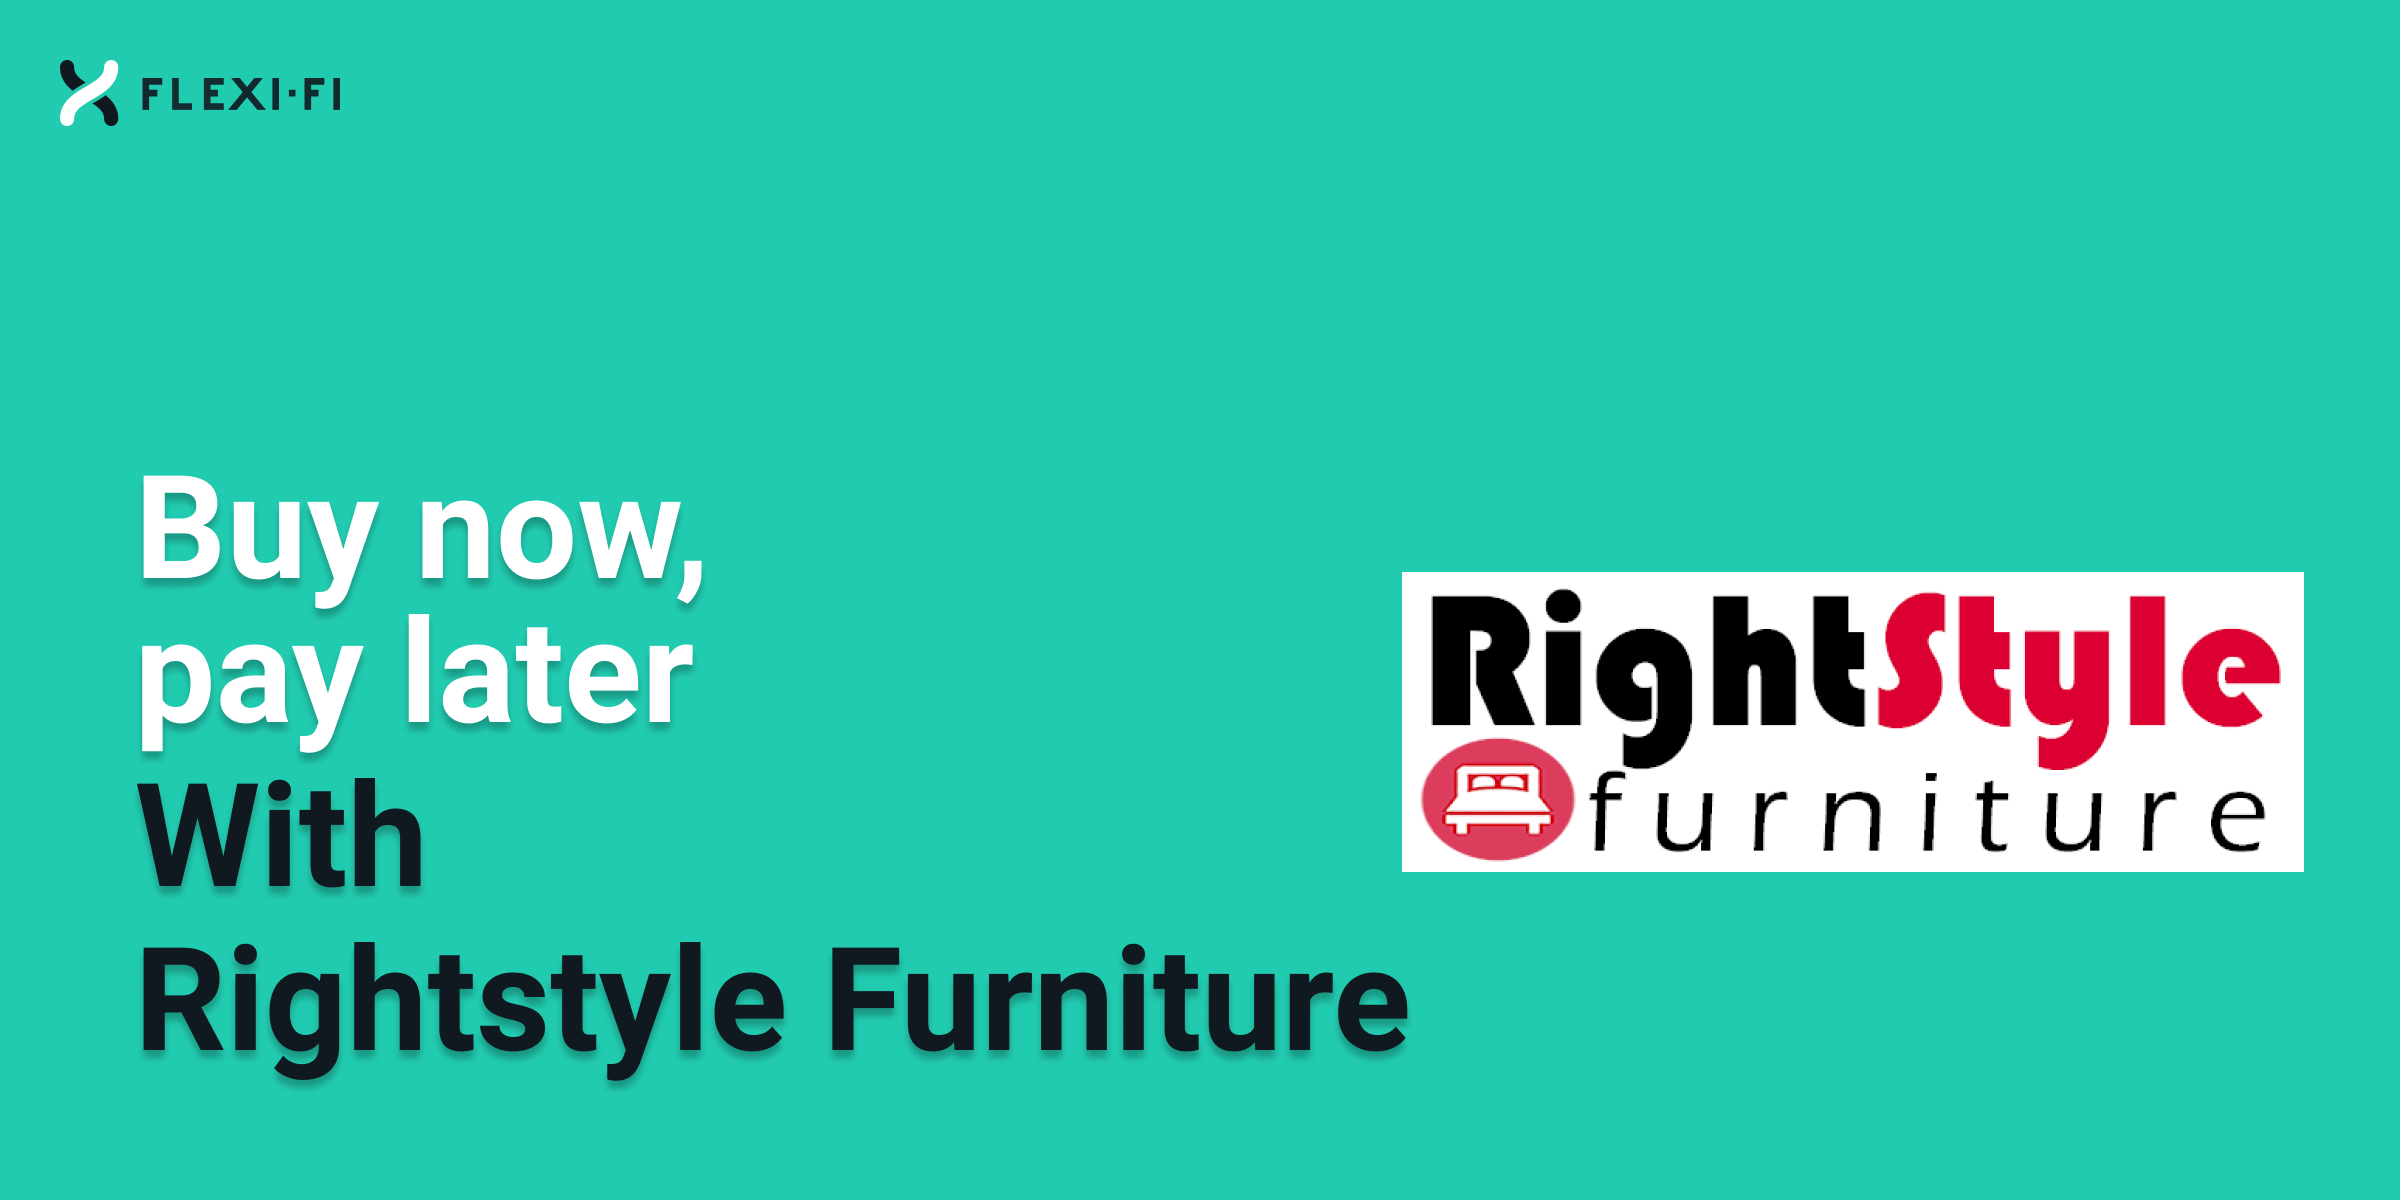 Retailer Rightstyle Furniture